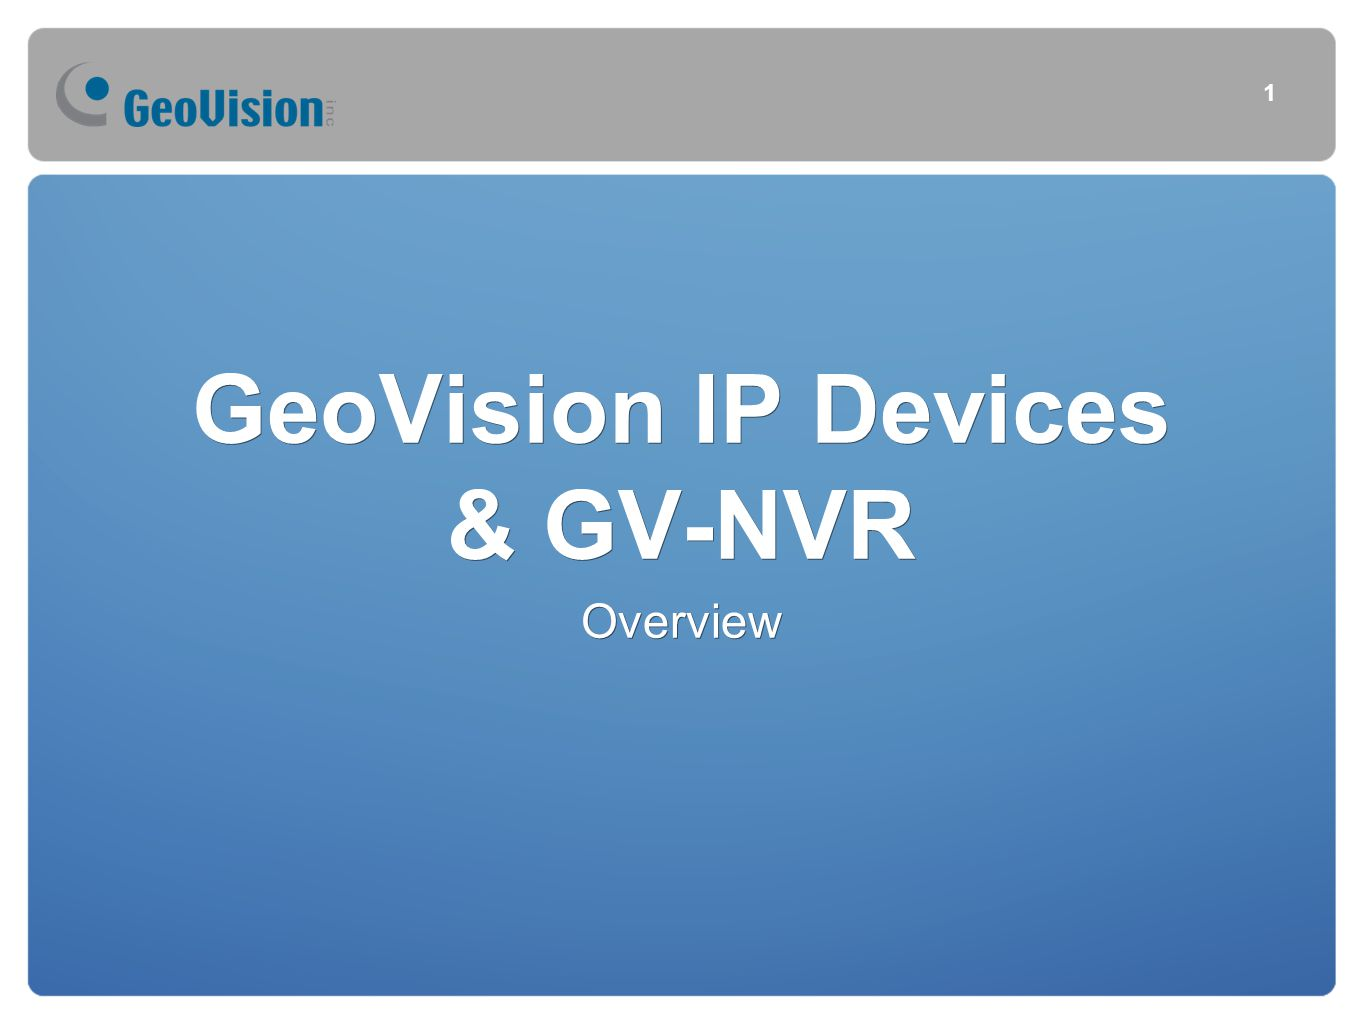 GeoVision IP Devices & GV-NVR Overview 1